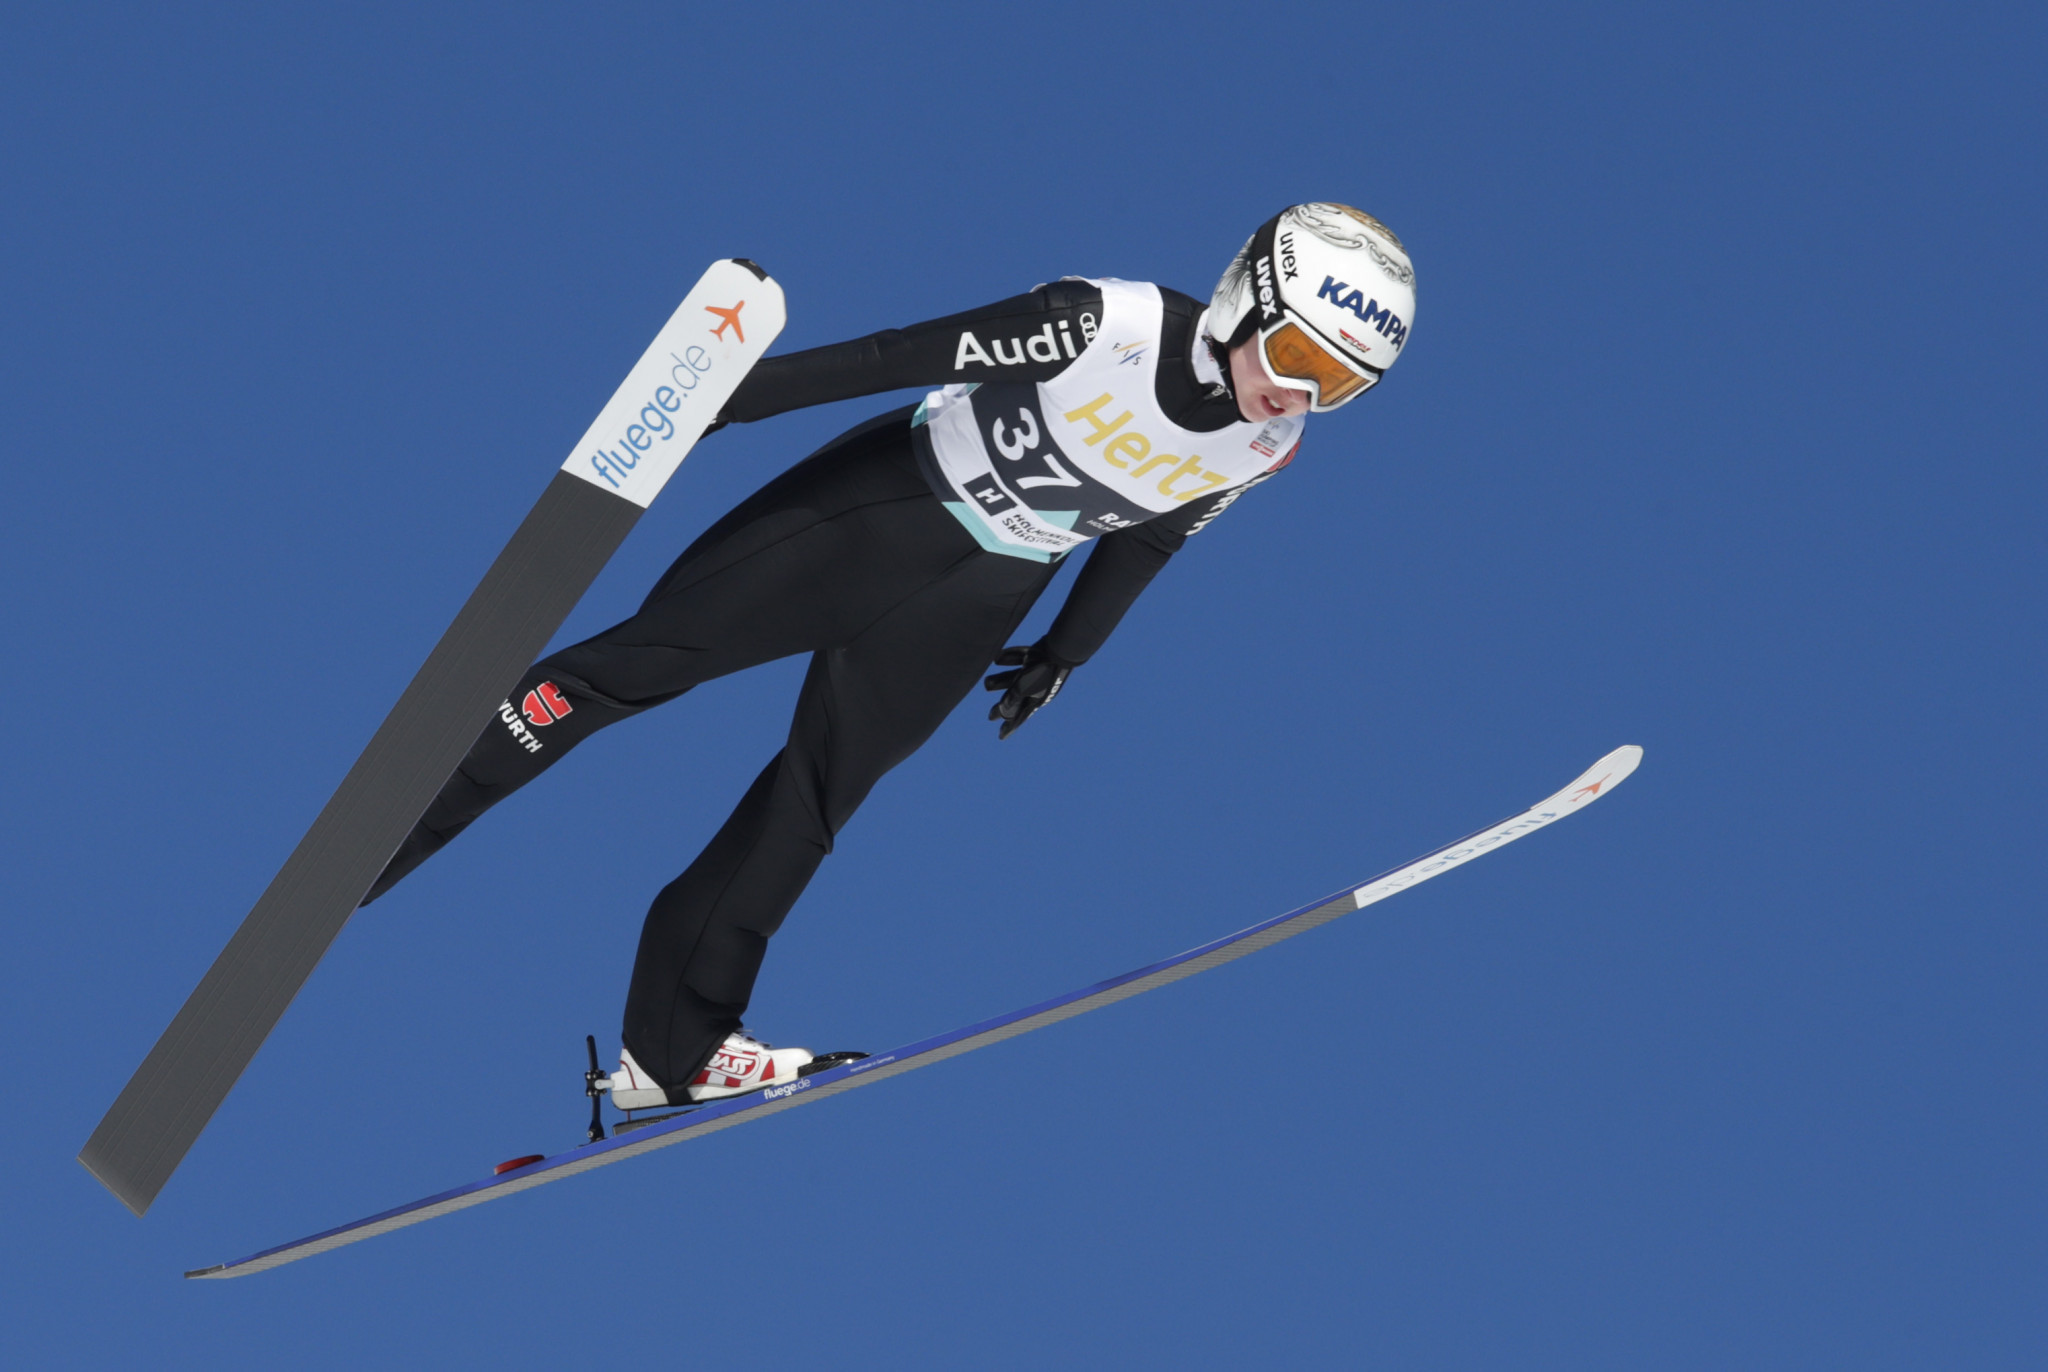 Seyfarth secures second successive win at FIS Ski Jumping World Cup event in Nizhny Tagil